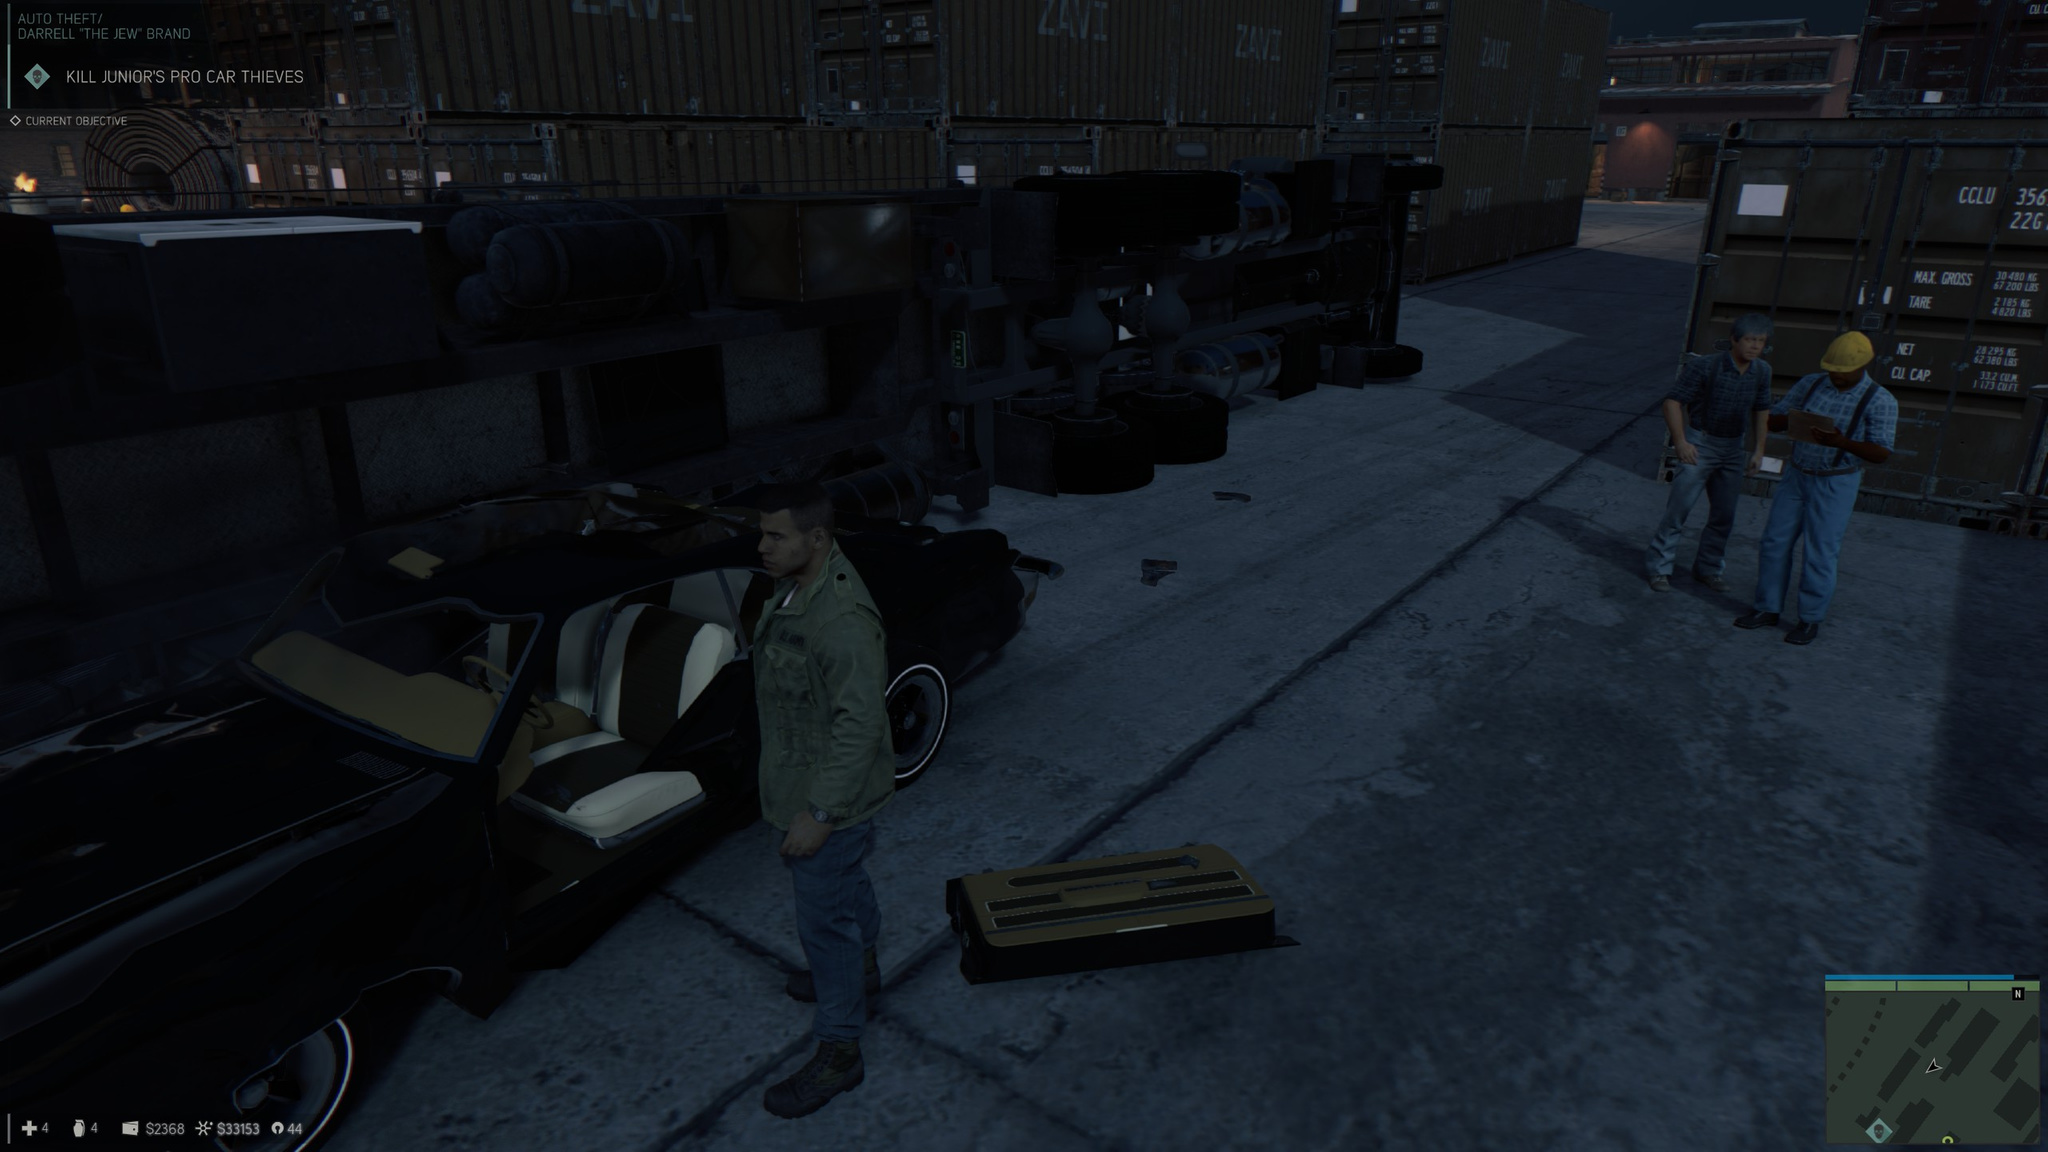 The truck LITERALLY spawned on top of my car, causing it to explode.